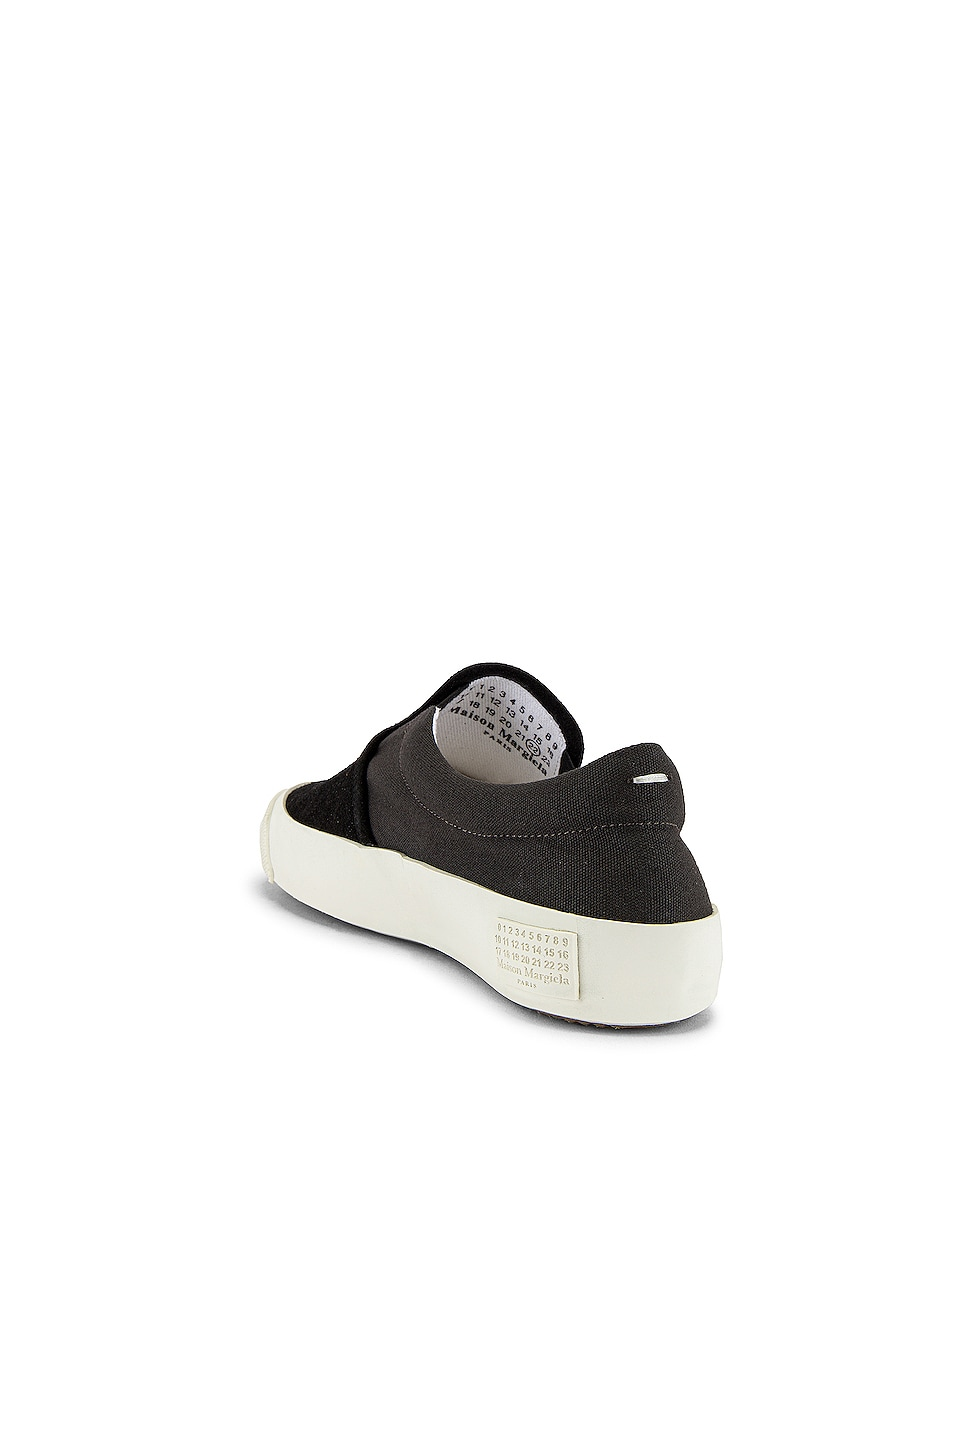 Image 3 of Maison Margiela Hurricane Slip On in Smoke 91 & Neroy